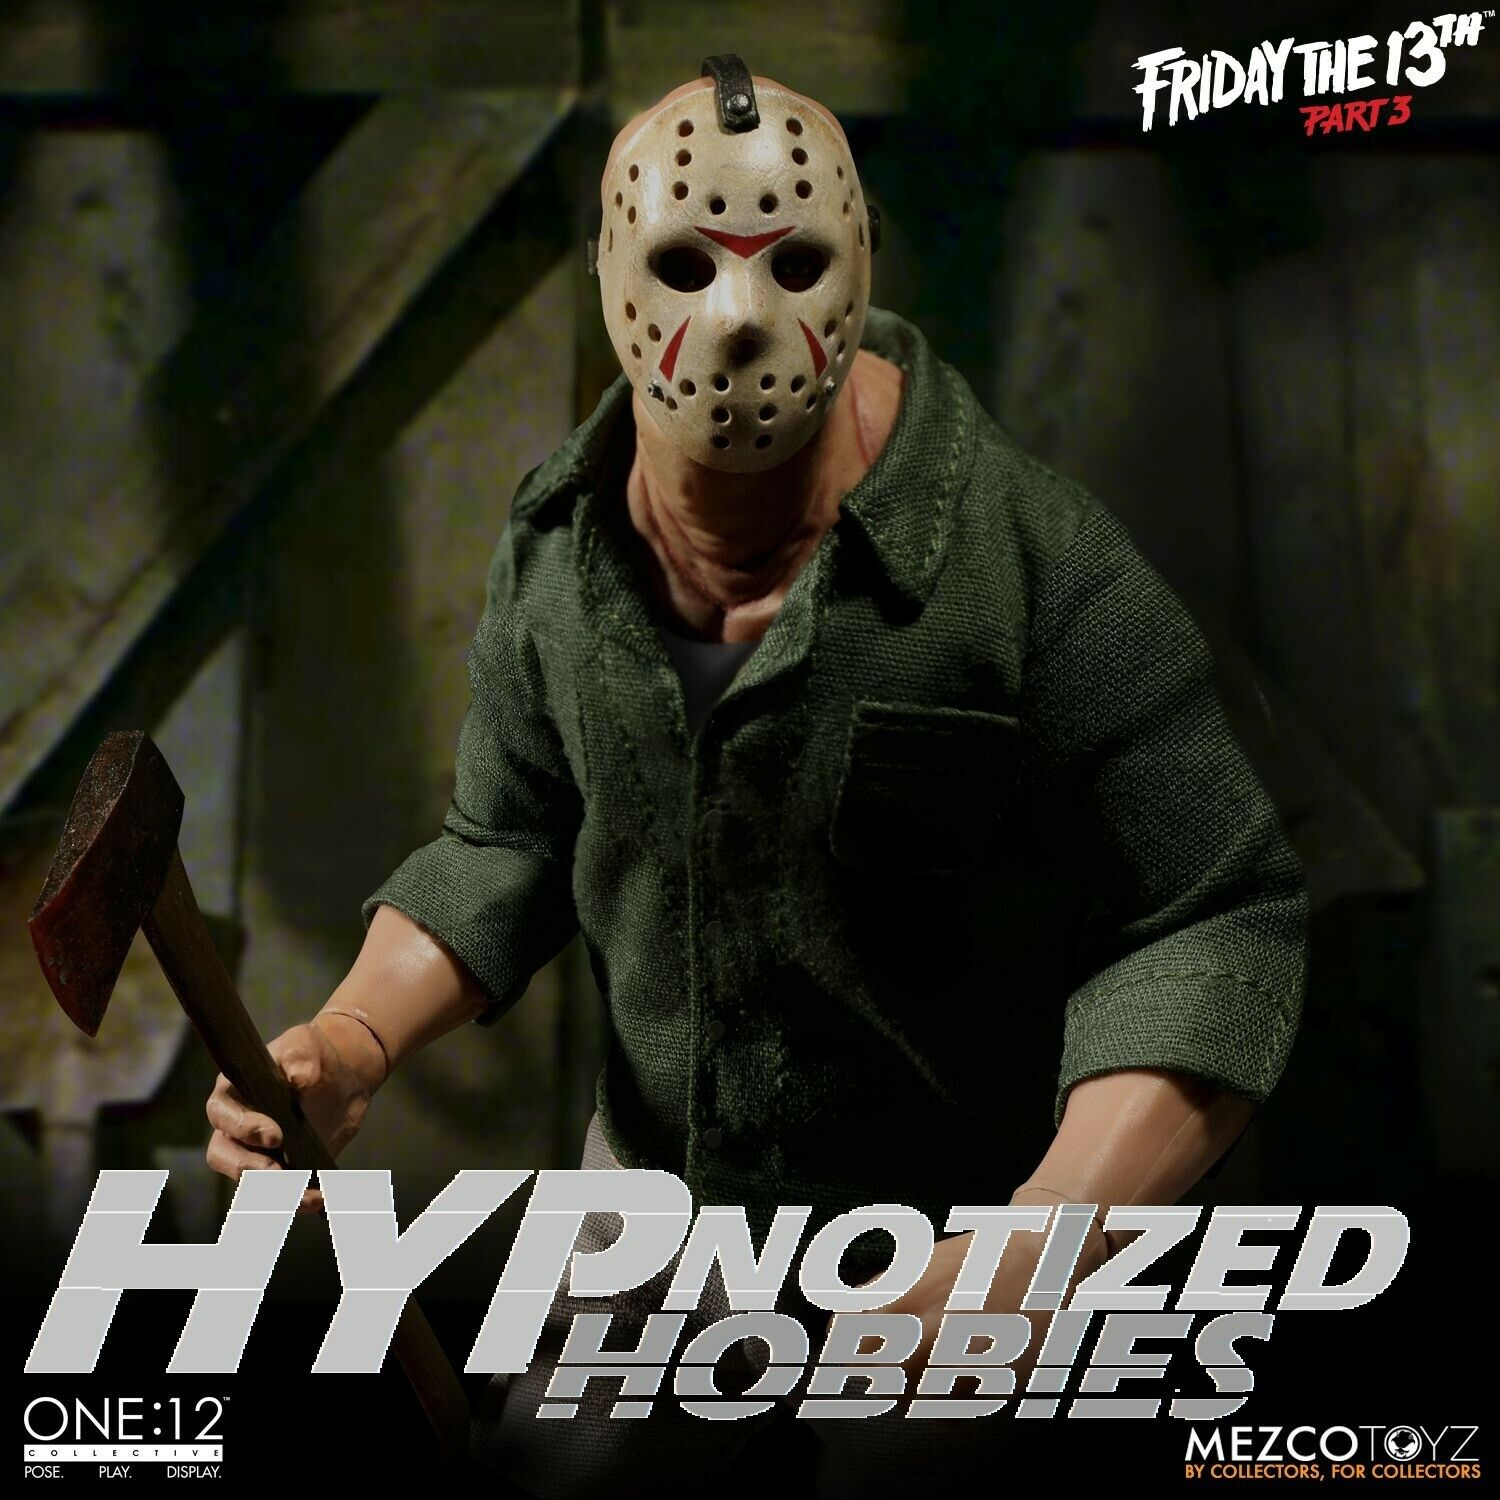 MEZCOTOYZ ONE 12 COLLECTIVE FRIDAY THE 13TH JASON VOORHEES FIGURE